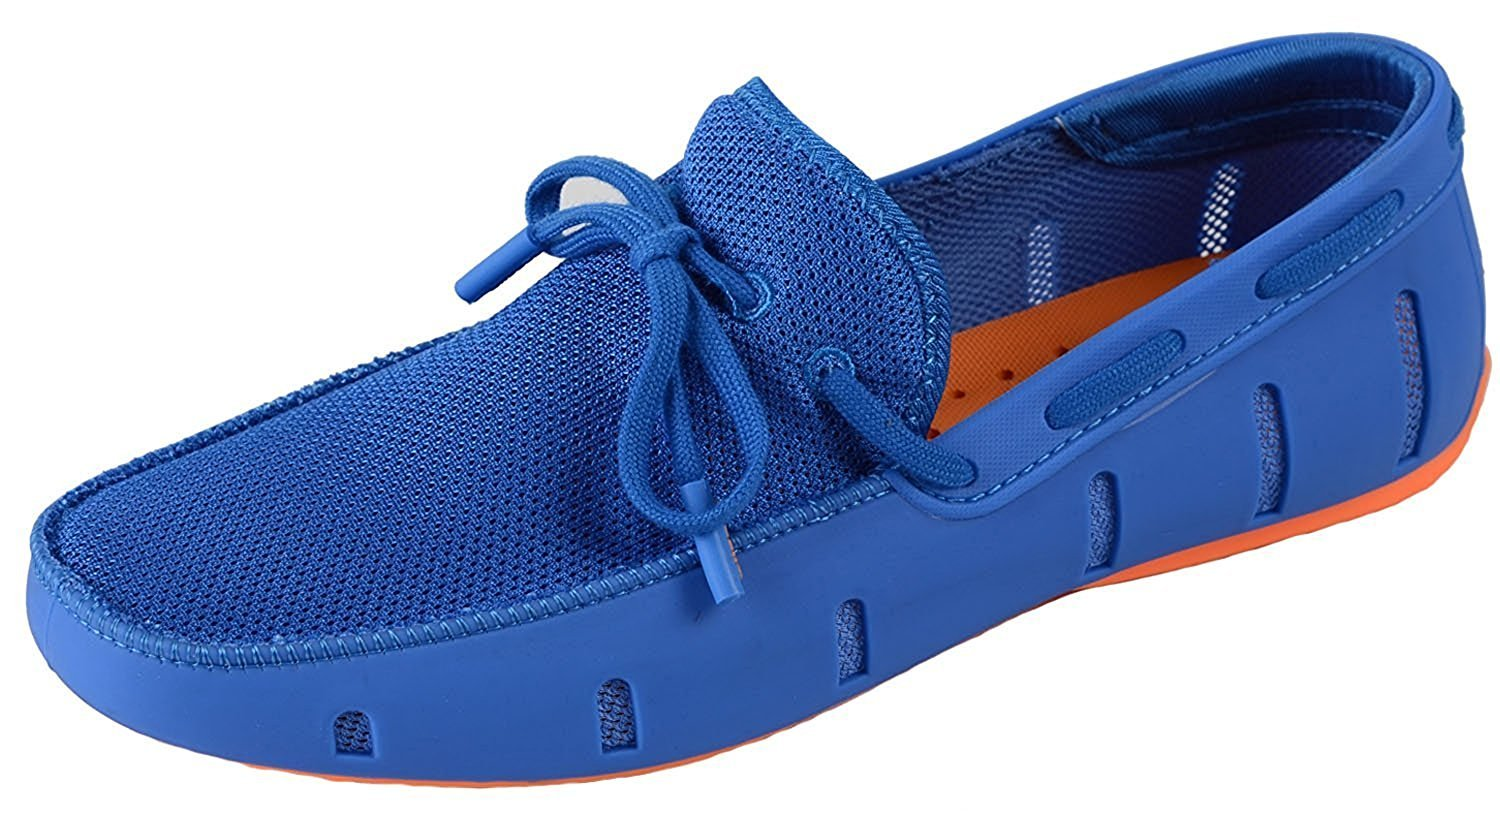 Go Tour , Herren Bootsschuhe  43 M 43 EU/ D(M)|Blue-orange